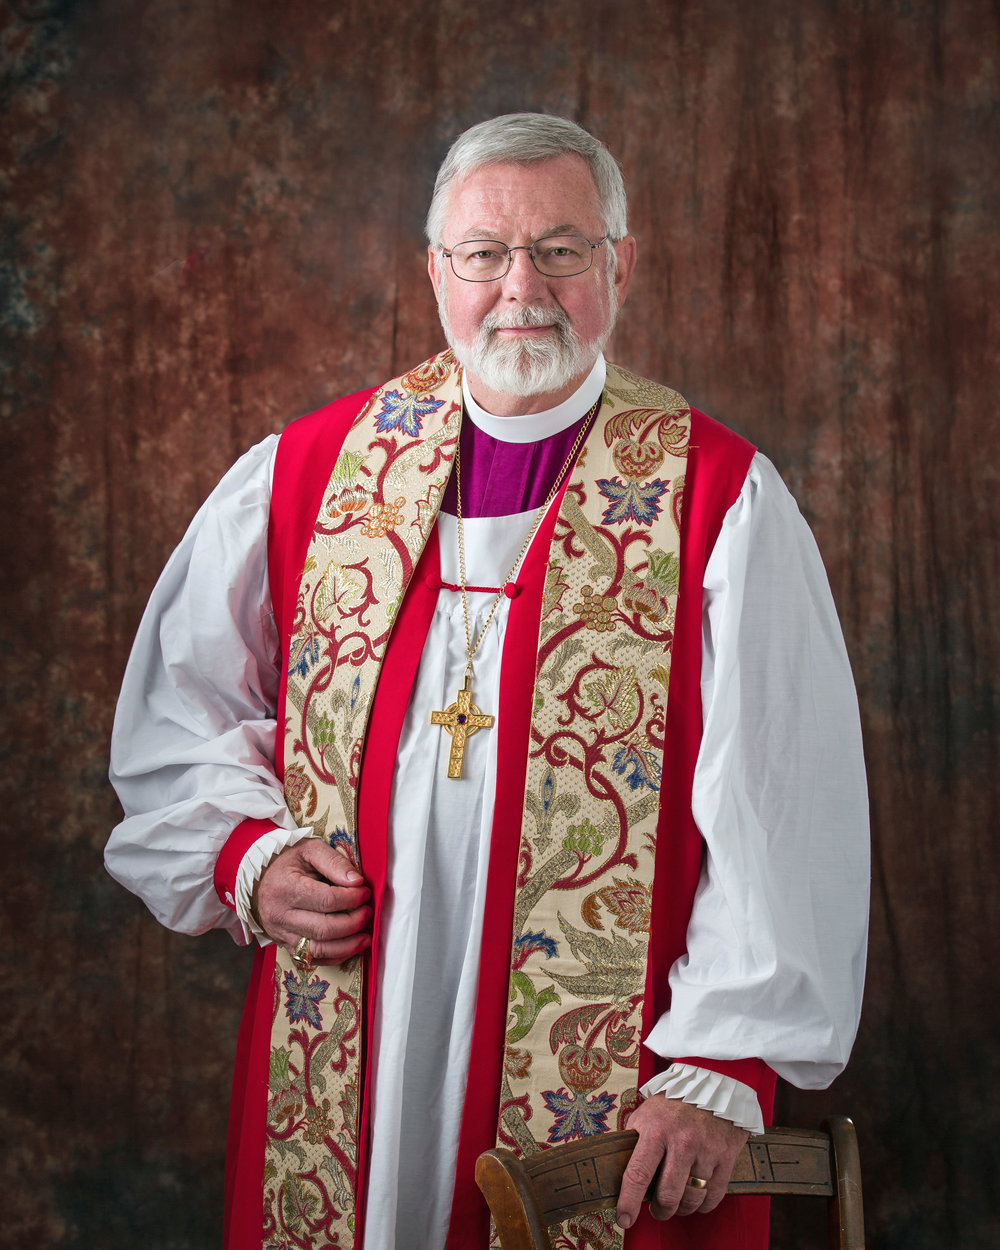 Bishop Allen 300 res portrait.jpg